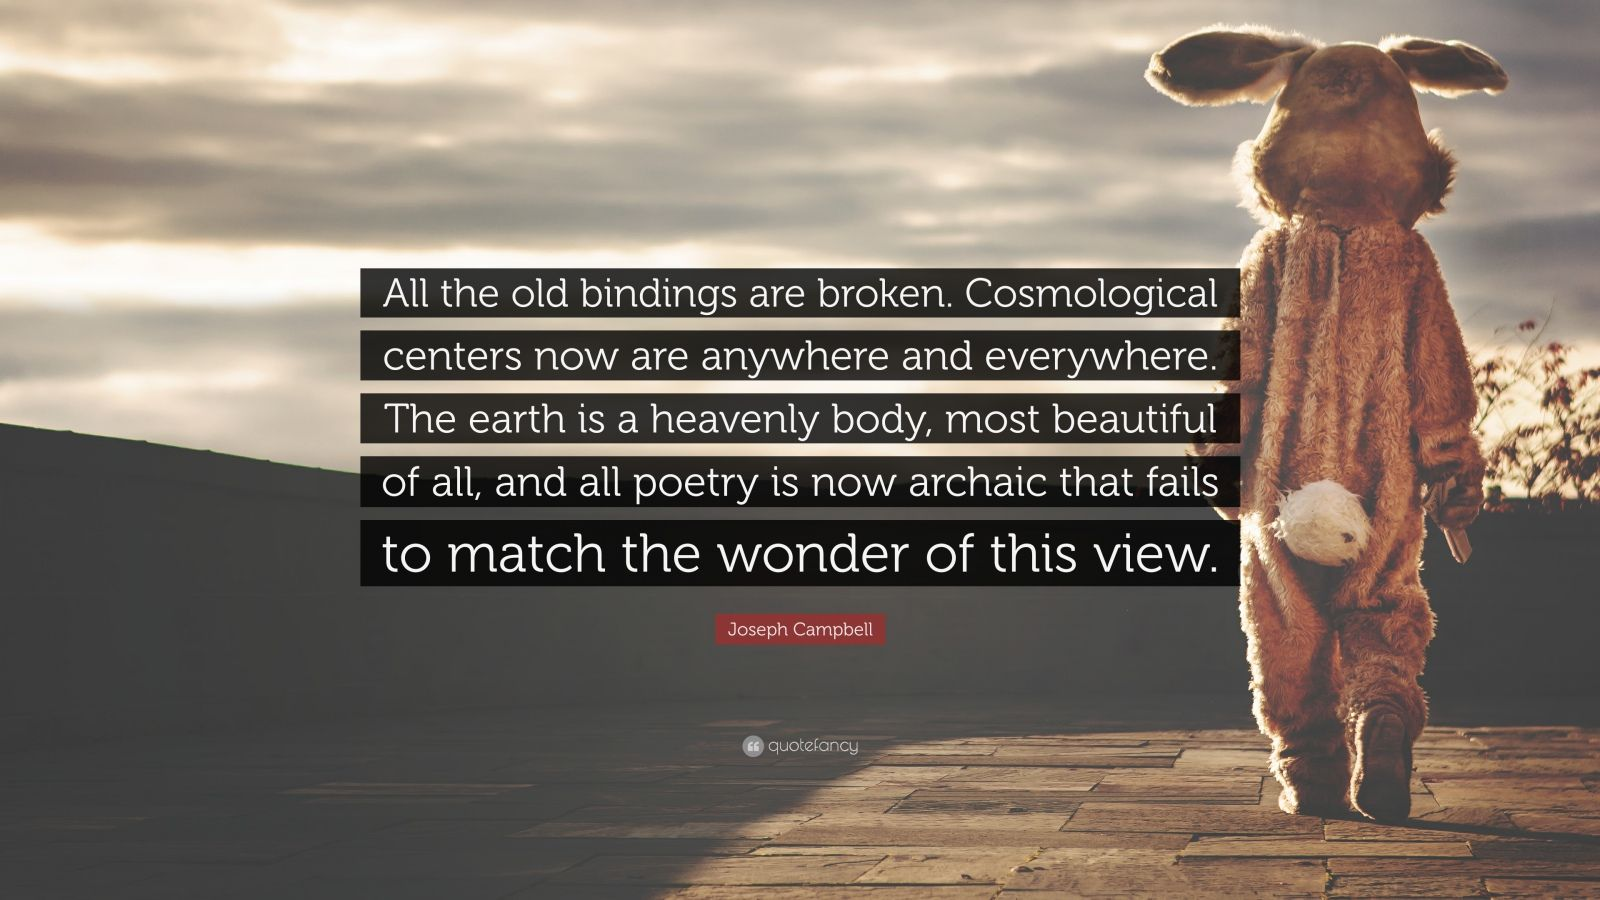 """Joseph Campbell Quote: """"All the old bindings are broken. Cosmological centers now are anywhere and everywhere. The earth is a heavenly body, most beautiful of all, and all poetry is now archaic that fails to match the wonder of this view."""""""